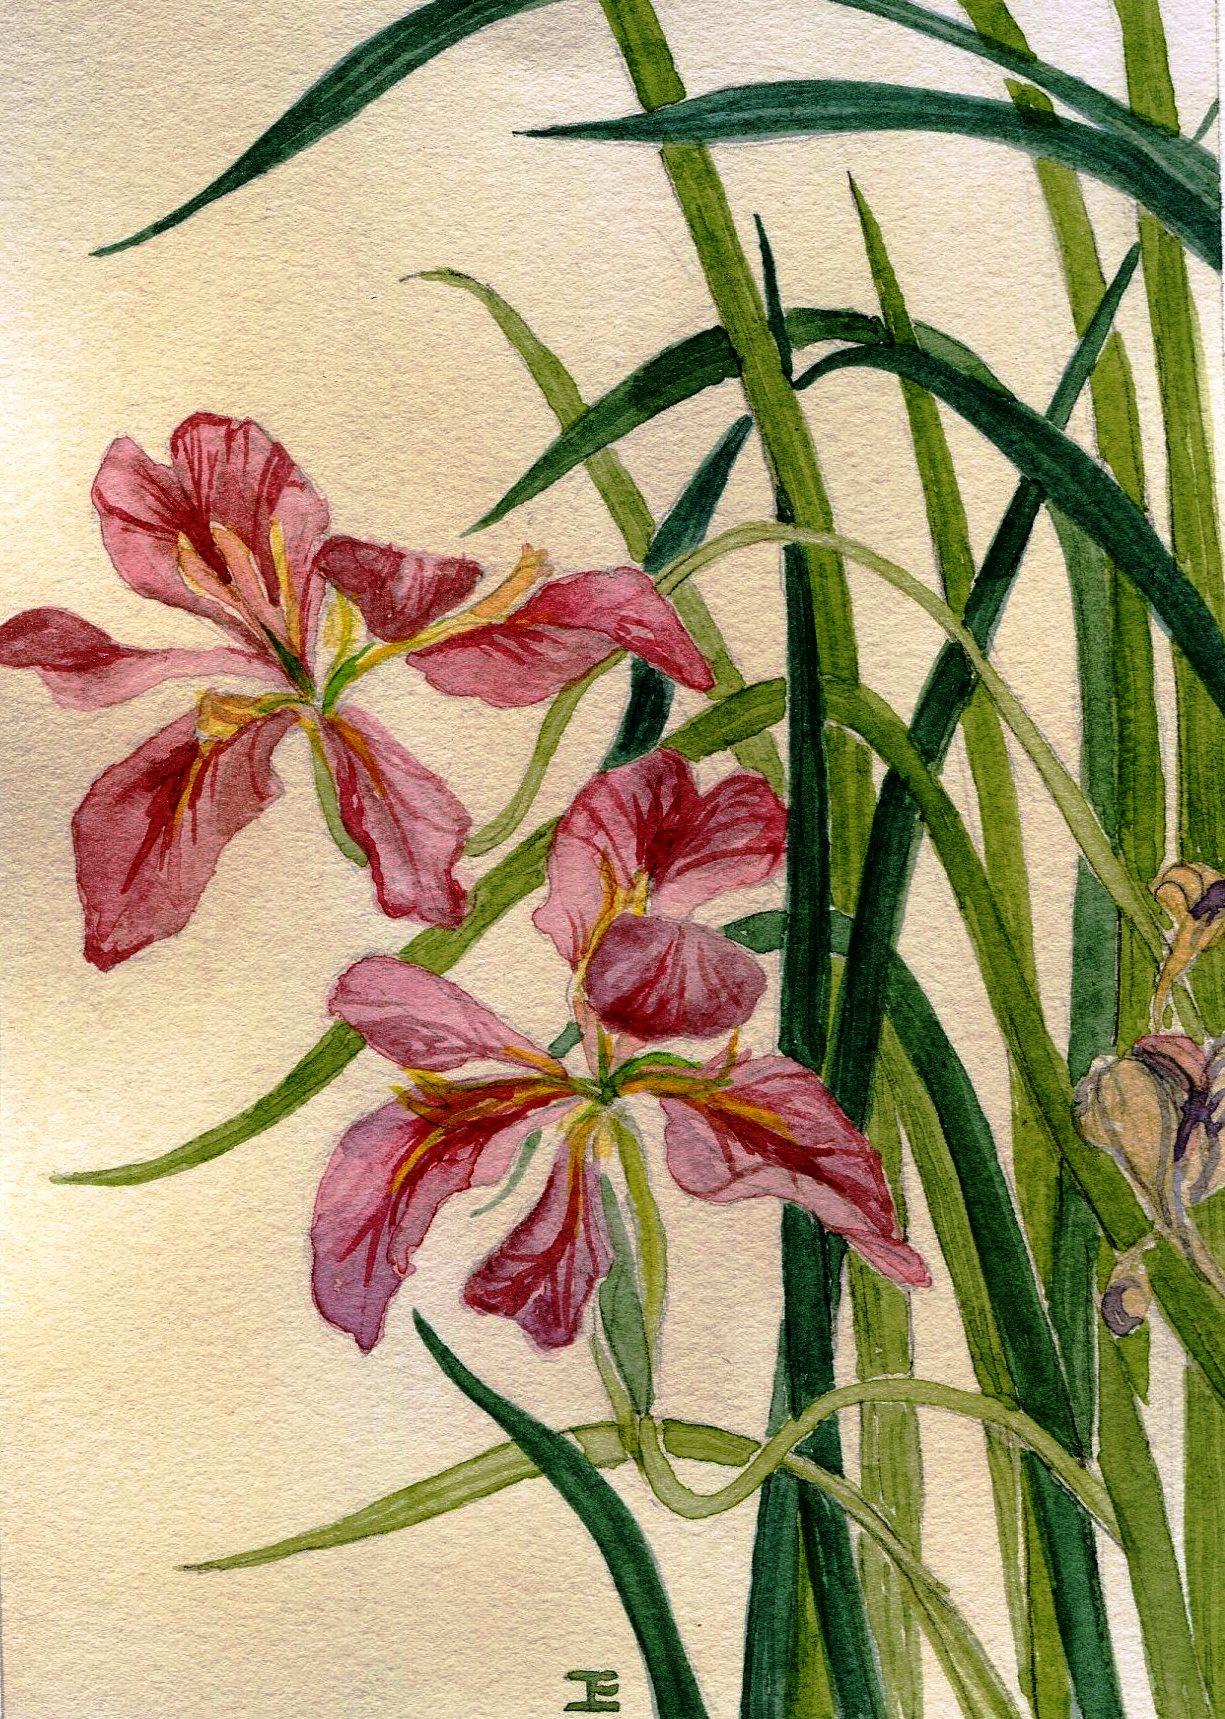 93B JEAN ELWORTHY, LOUISIANA IRIS, WATERCOLOUR ON PAPER